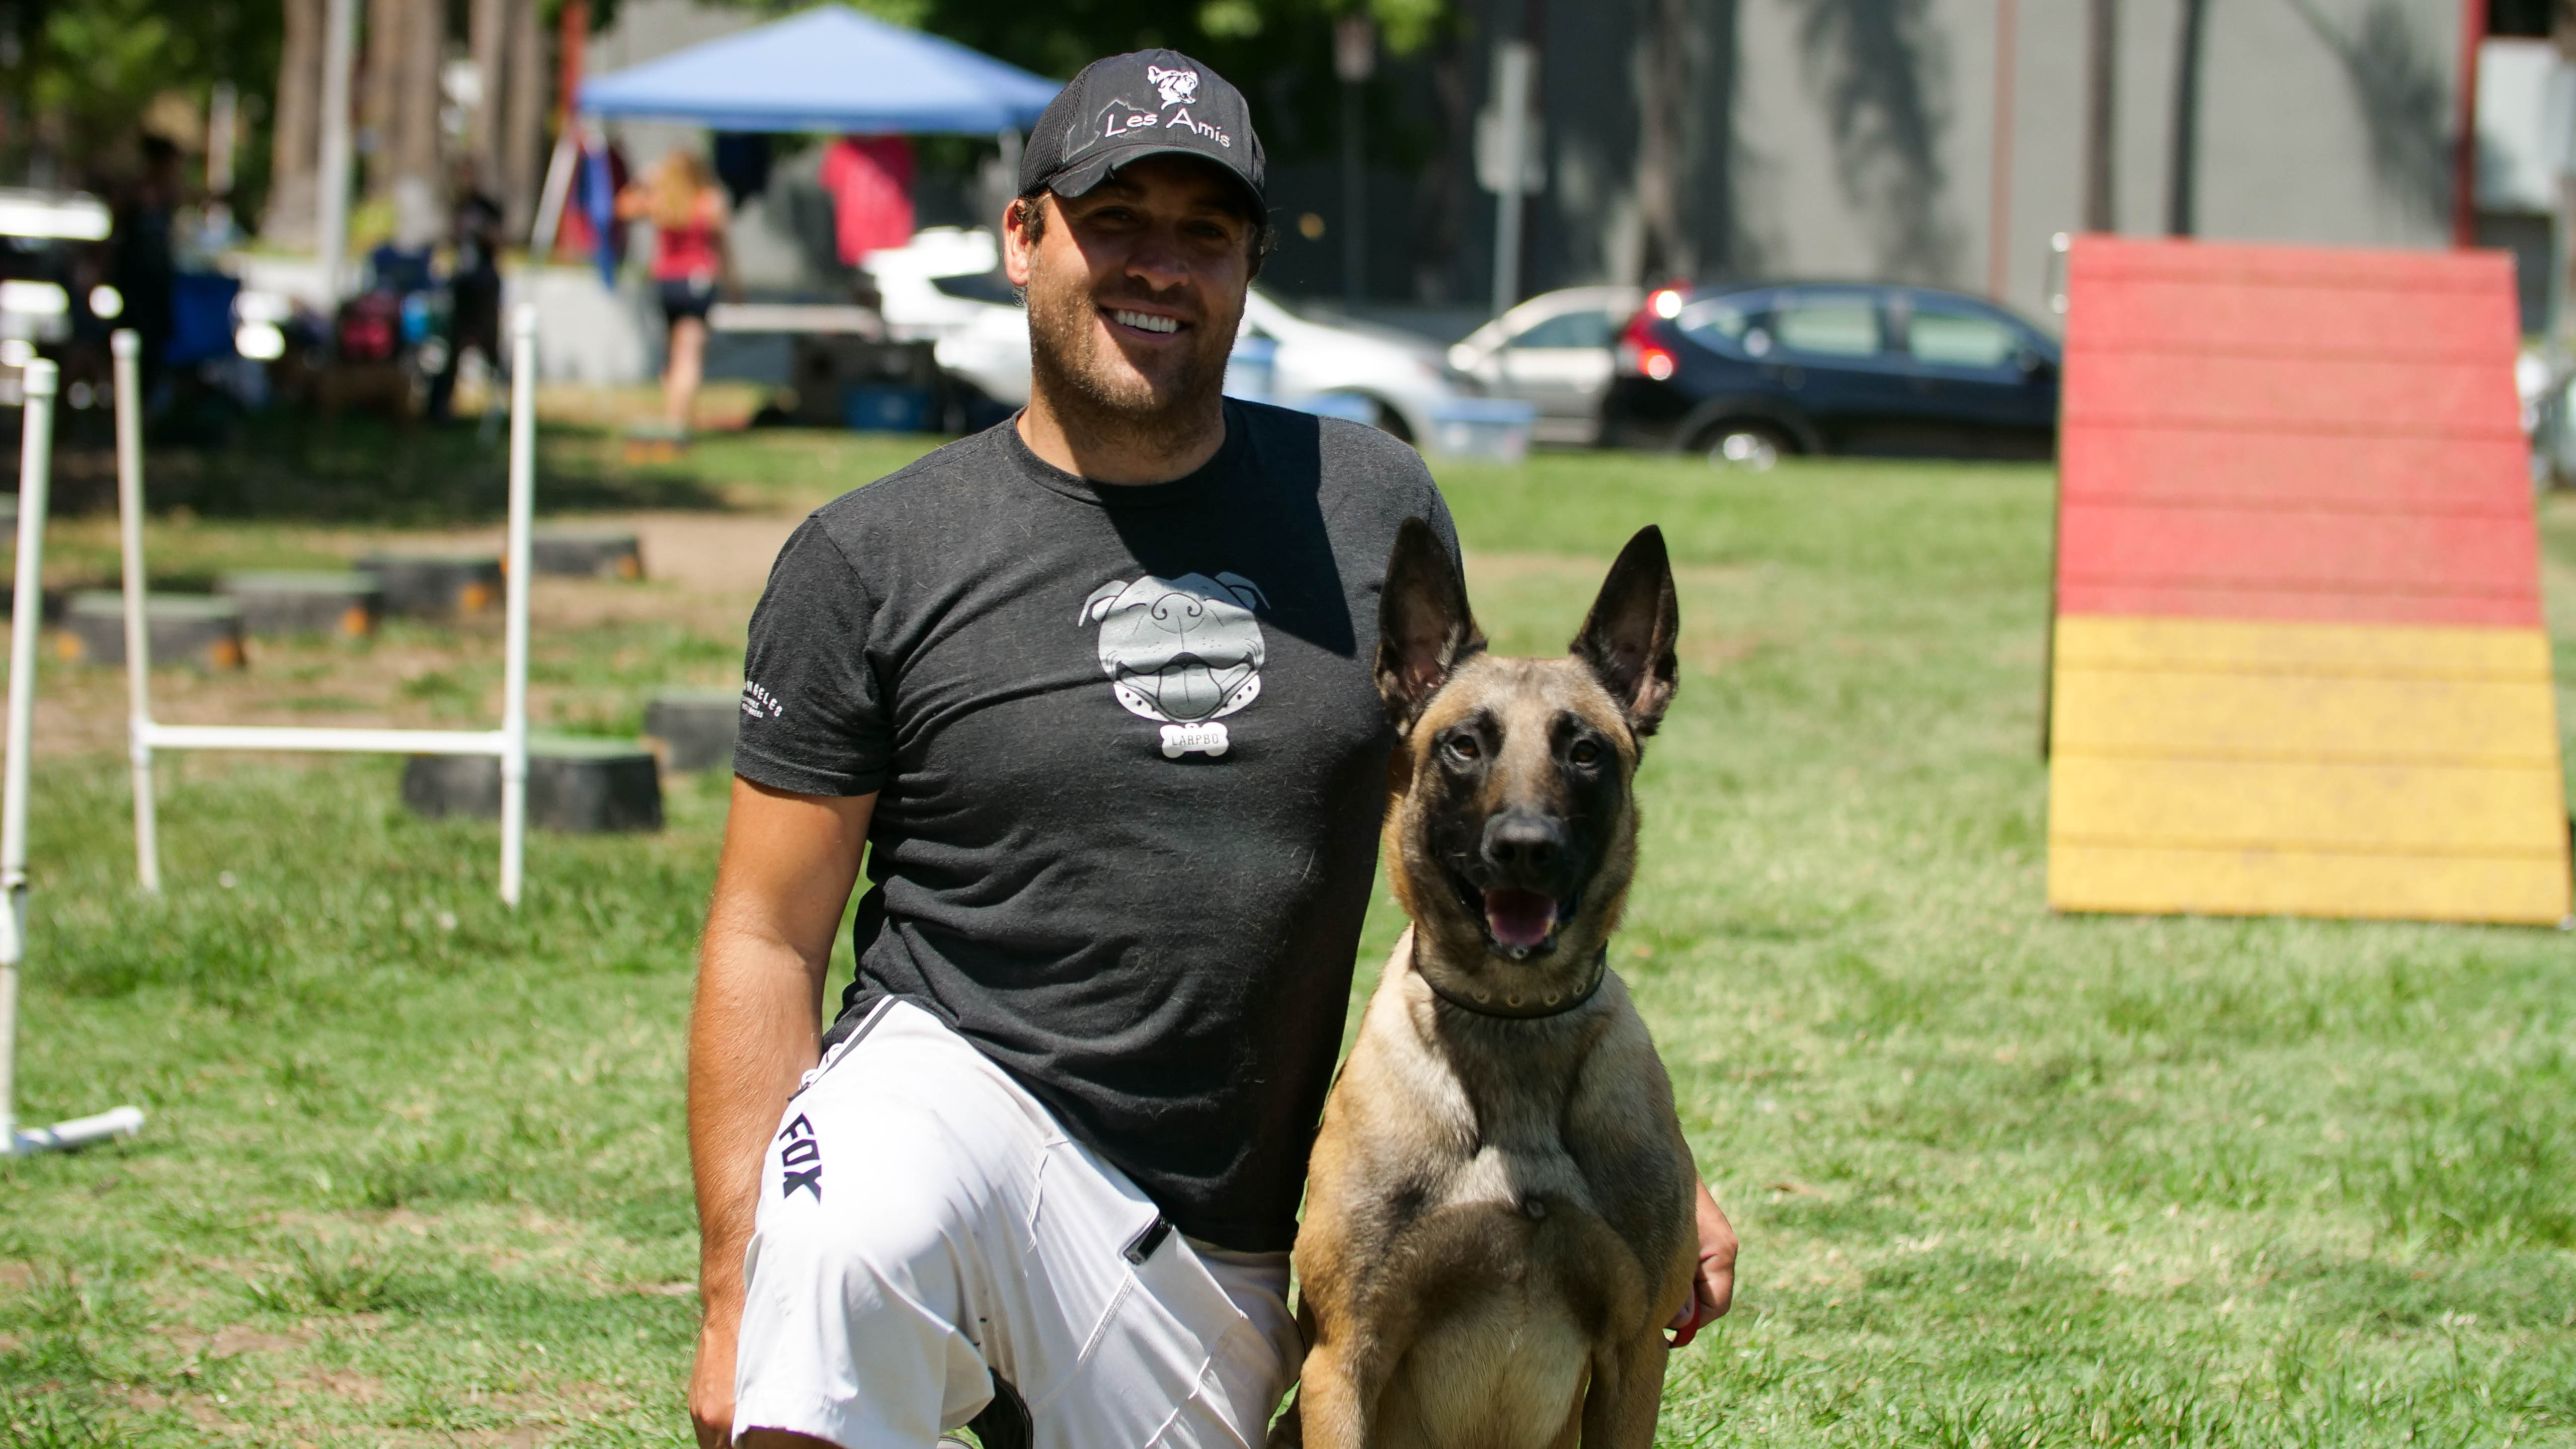 Los Angeles Responsible Pit Bulls founder Troy Smith with one of his dogs, Scar.